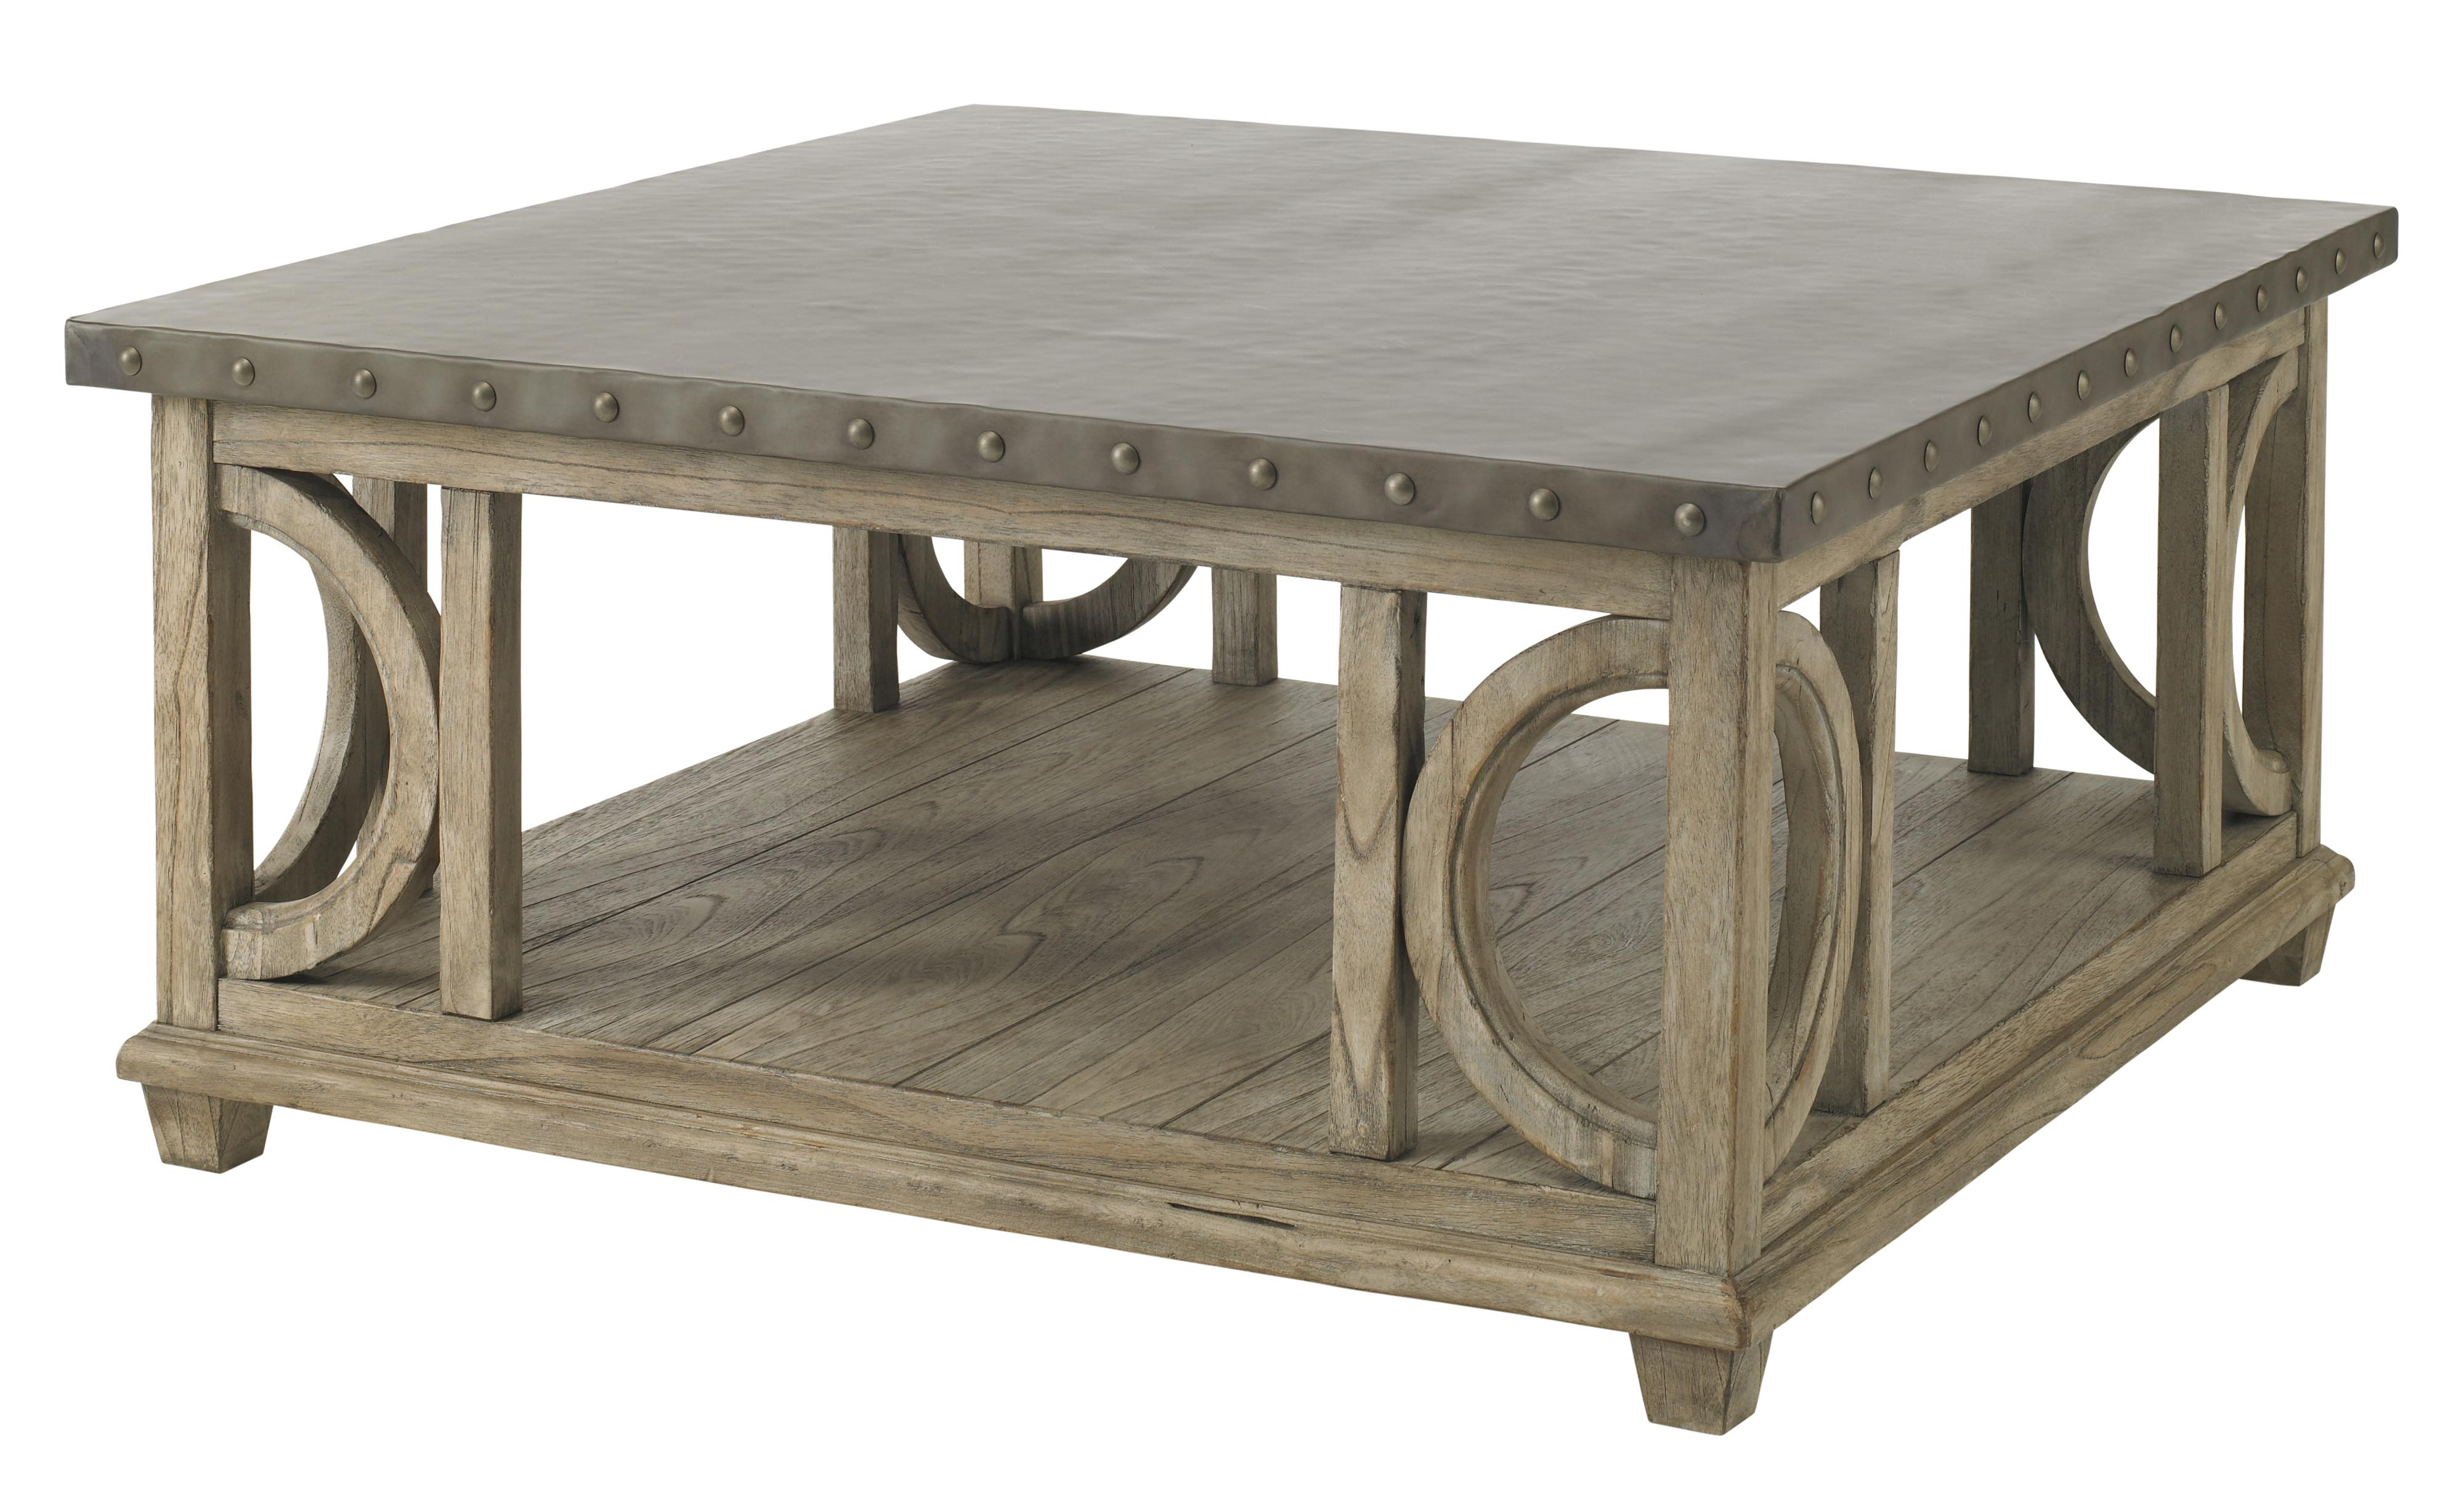 Twilight Bay Wyatt Cocktail Table by Lexington at Baer's Furniture